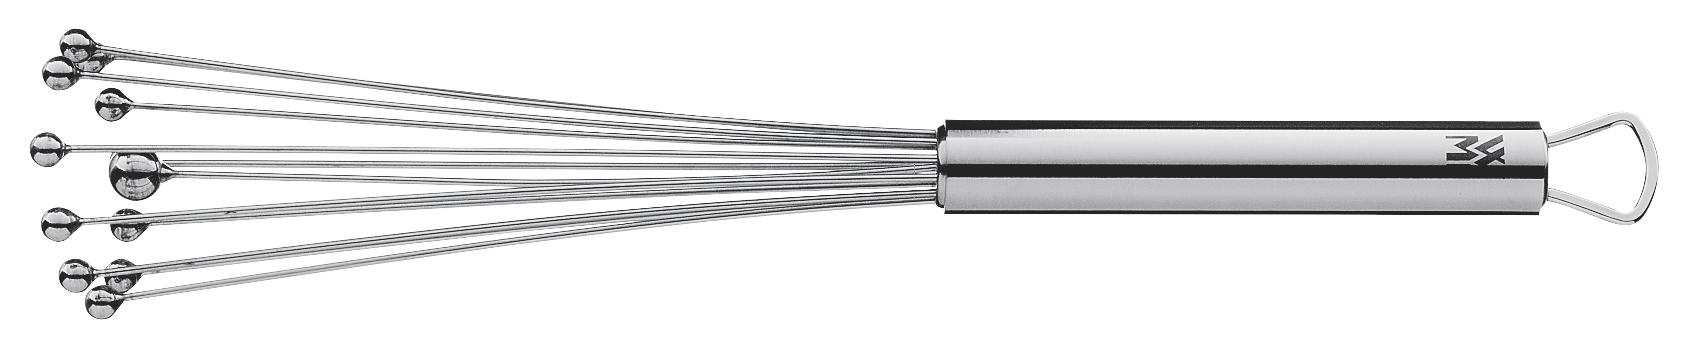 PROFI PLUS Flexi whisk 27cm